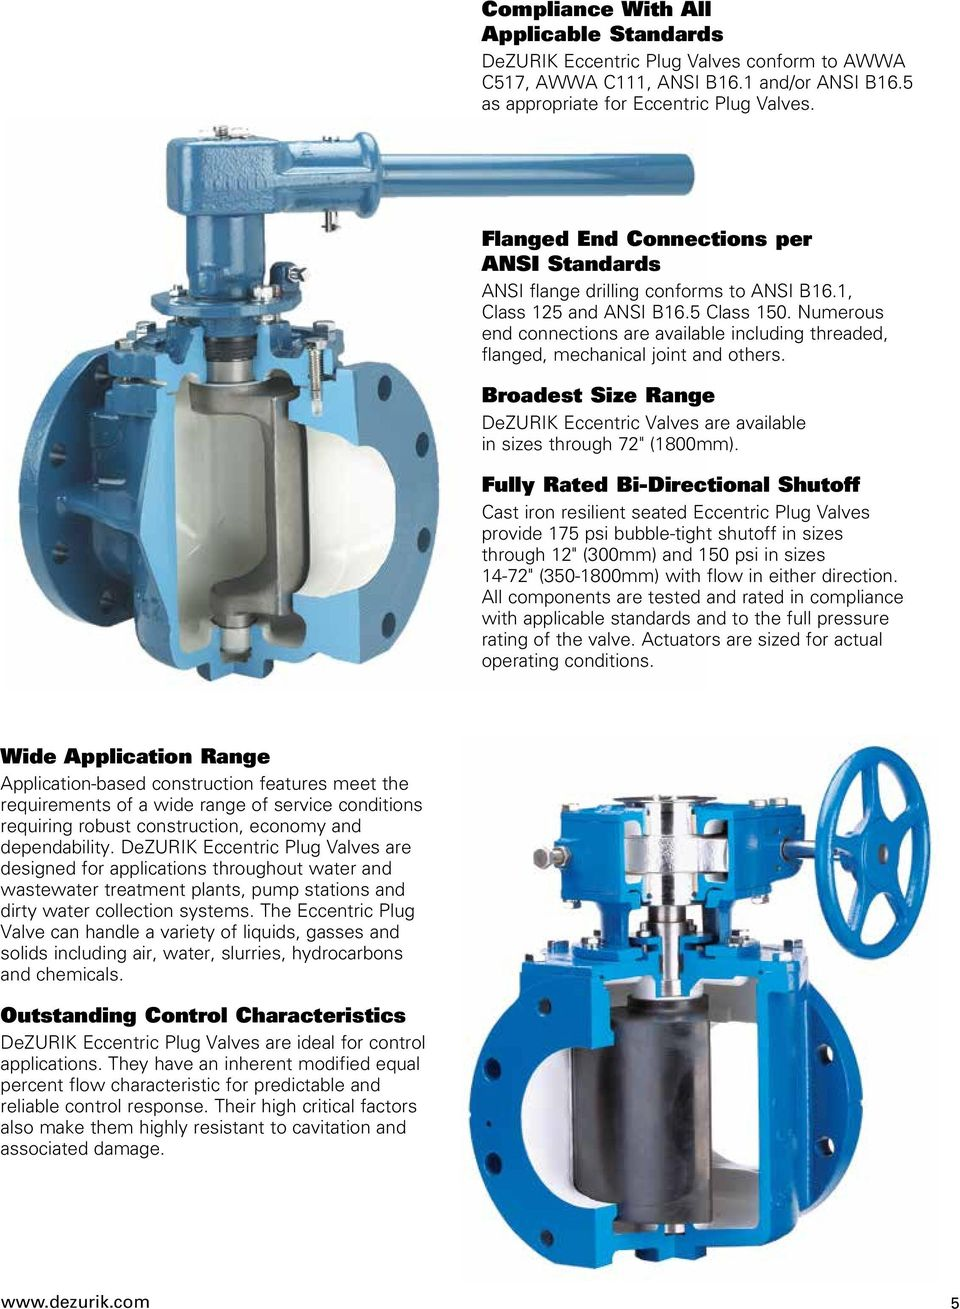 "Numerous end connections are available including threaded, flanged, mechanical joint and others. Broadest Size Range DeZURIK Eccentric Valves are available in sizes through 72"" (1800mm)."